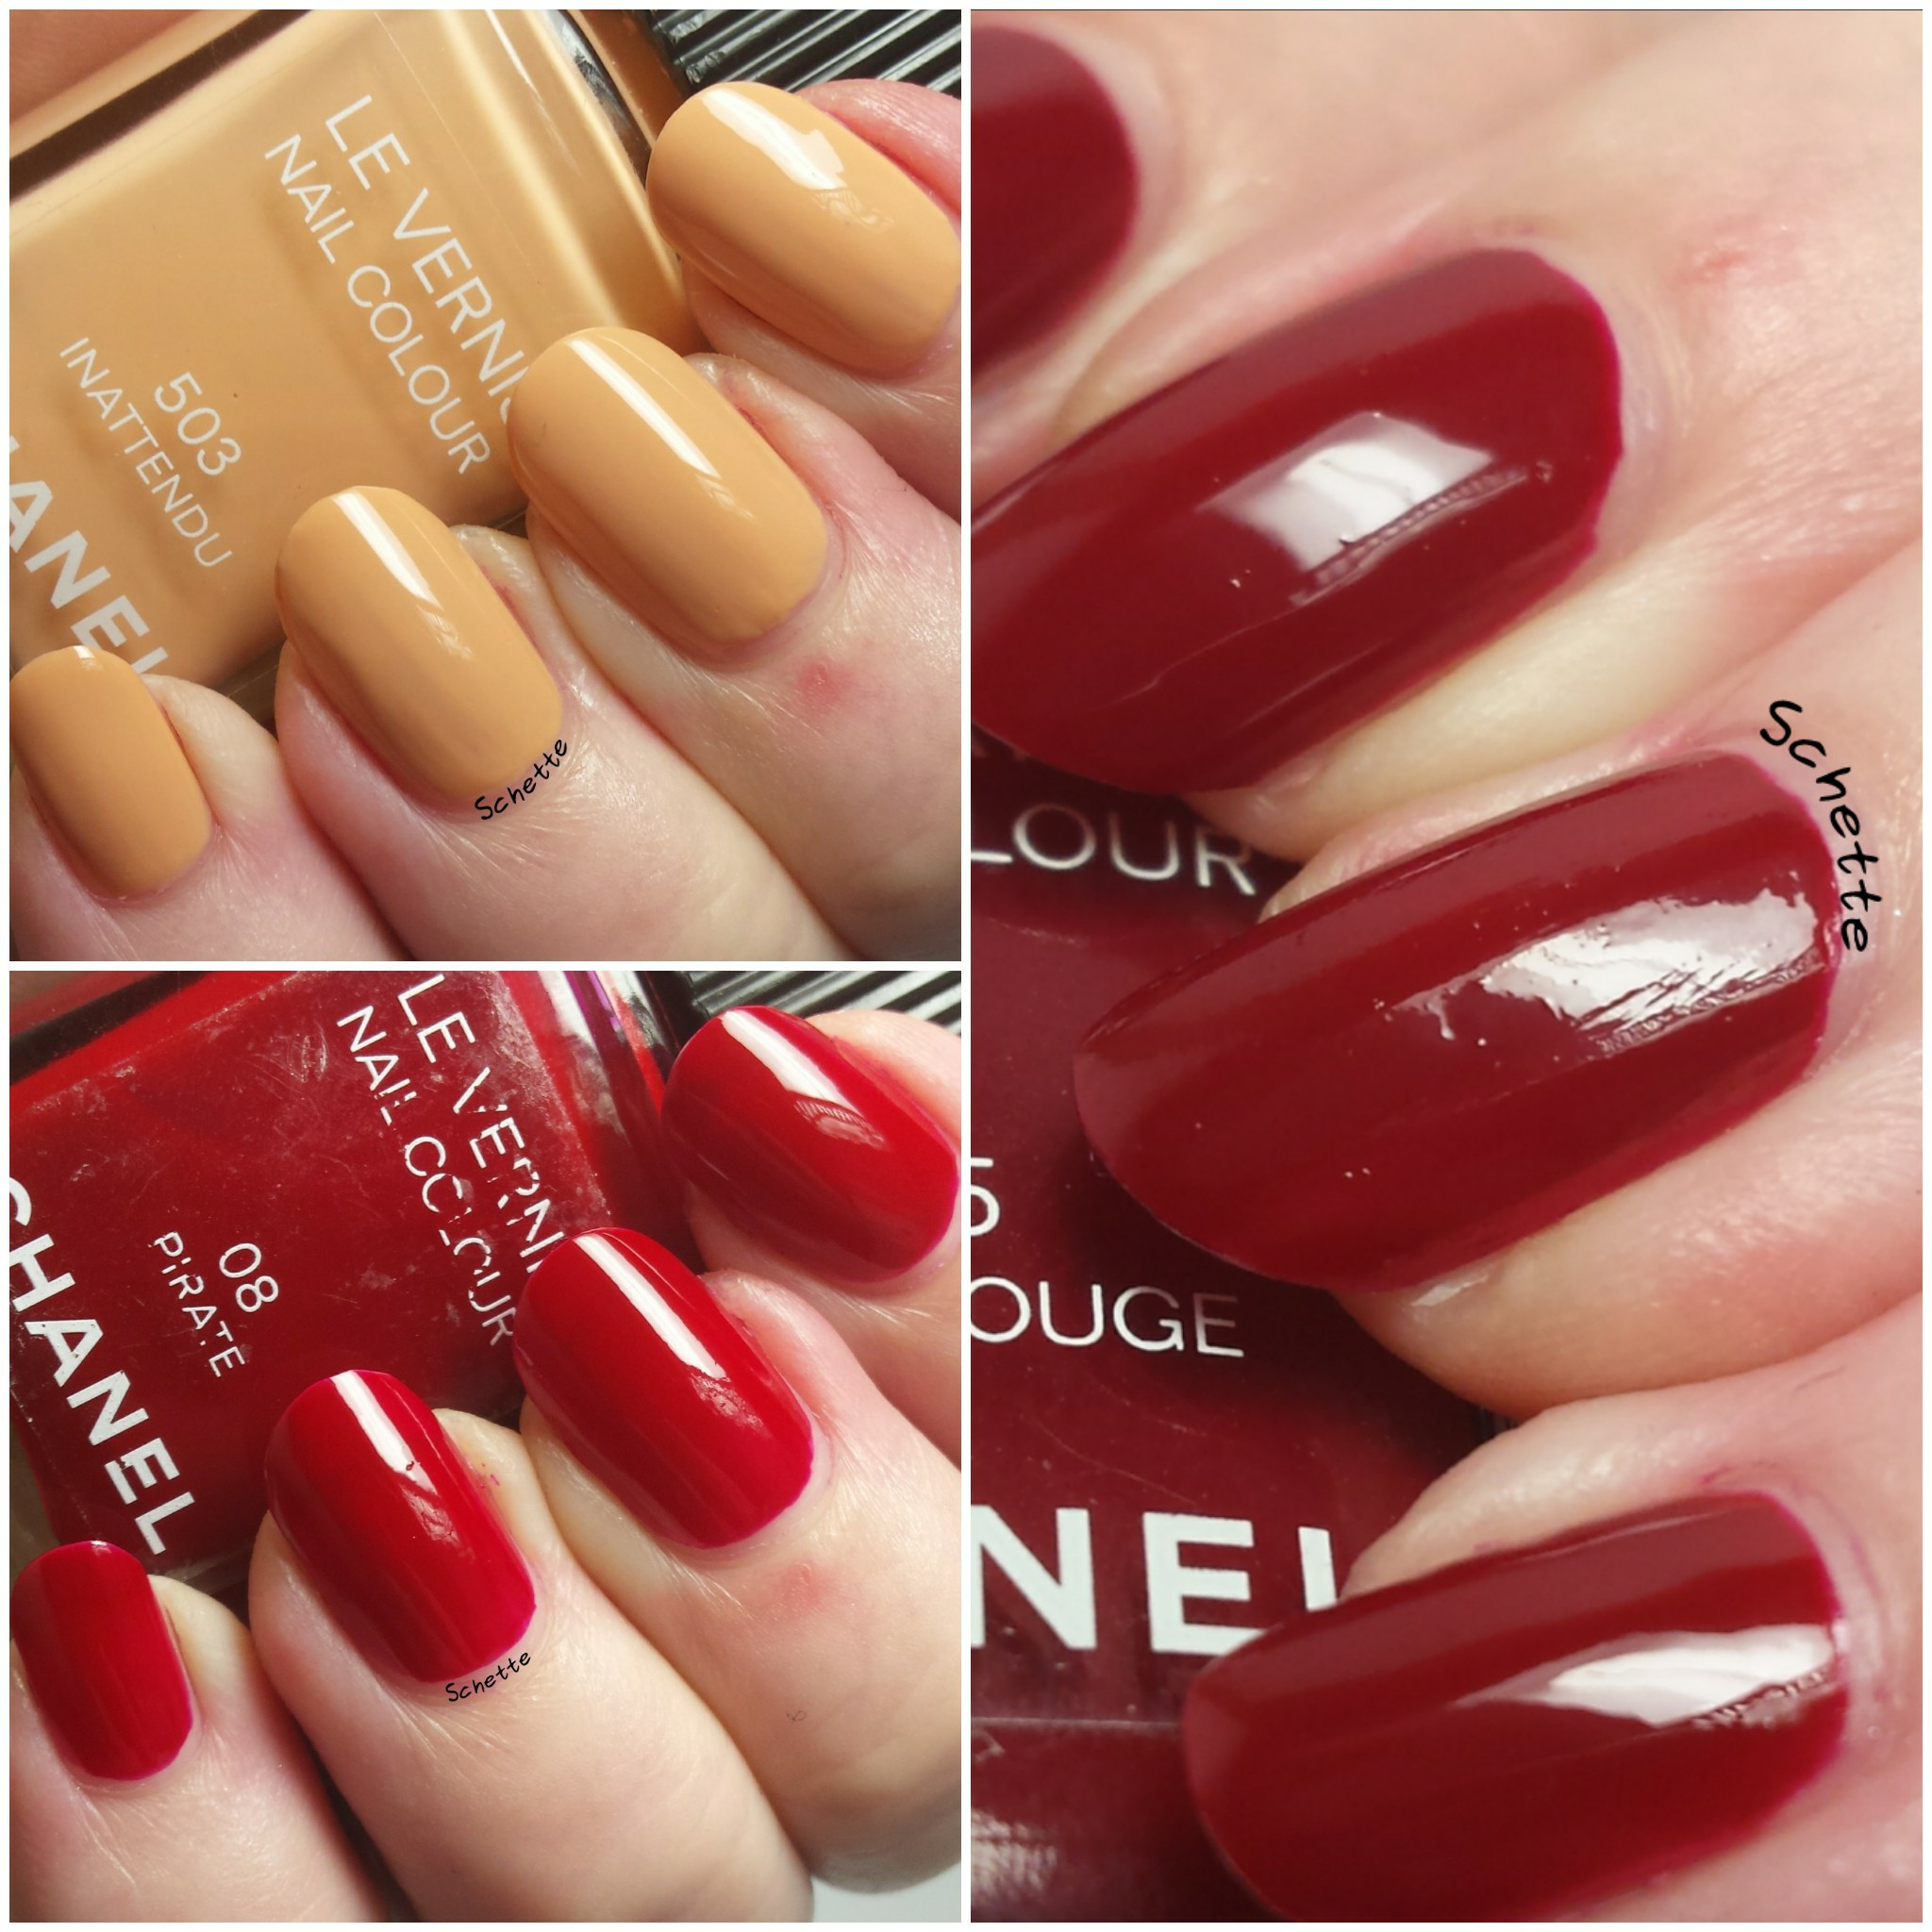 Chanel : Pirate, Inattendu, Lotus Rouge